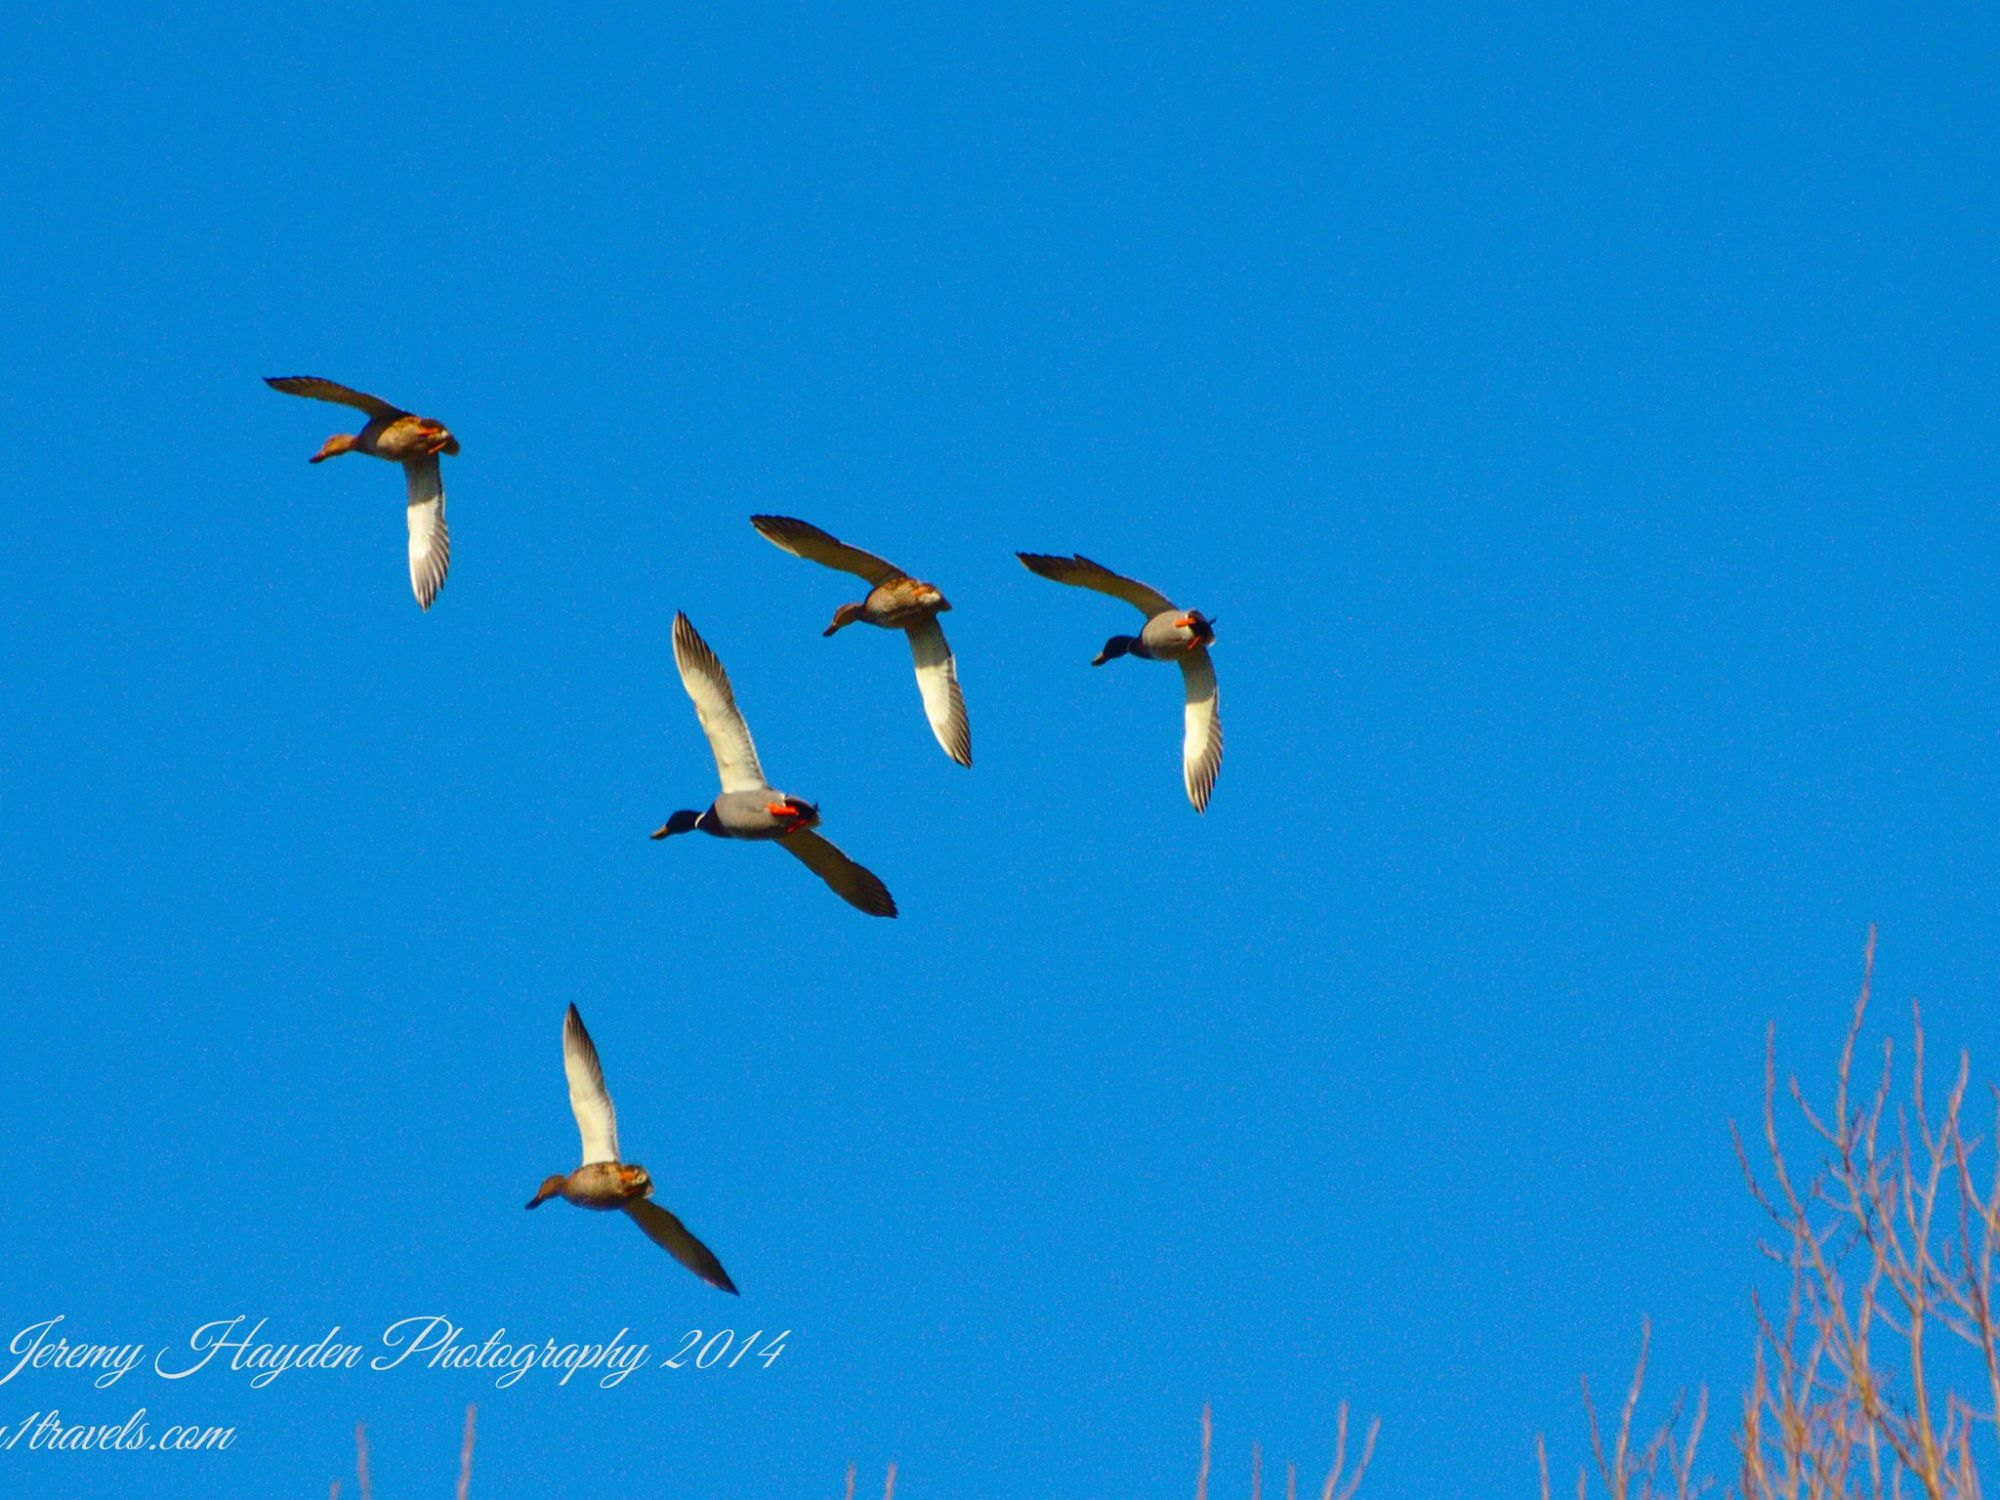 A Flypast of Ducks from The Travels of the Hairy 1